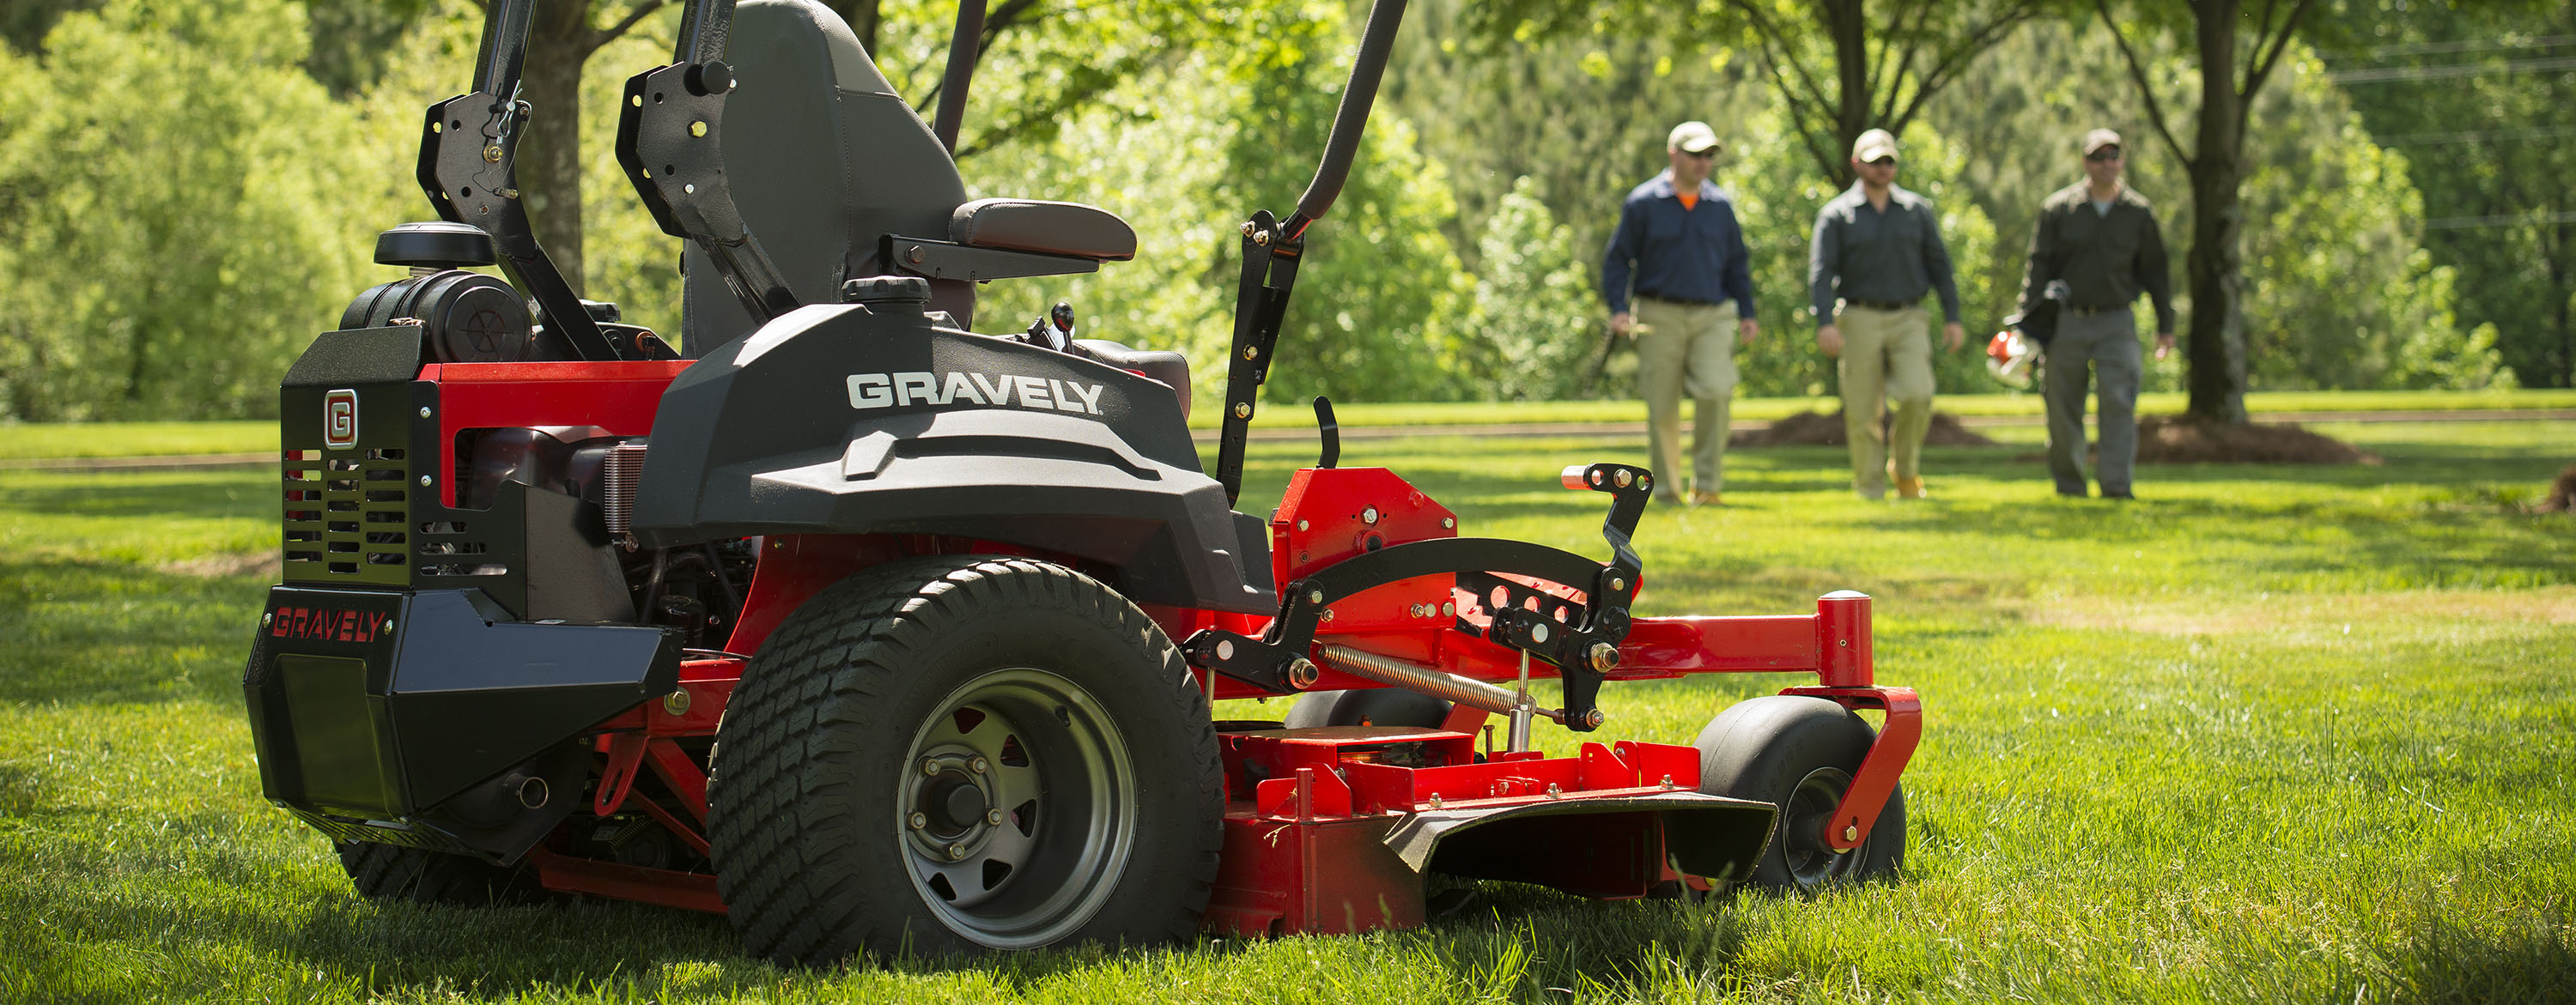 Gravely Mower, Dallas, PA